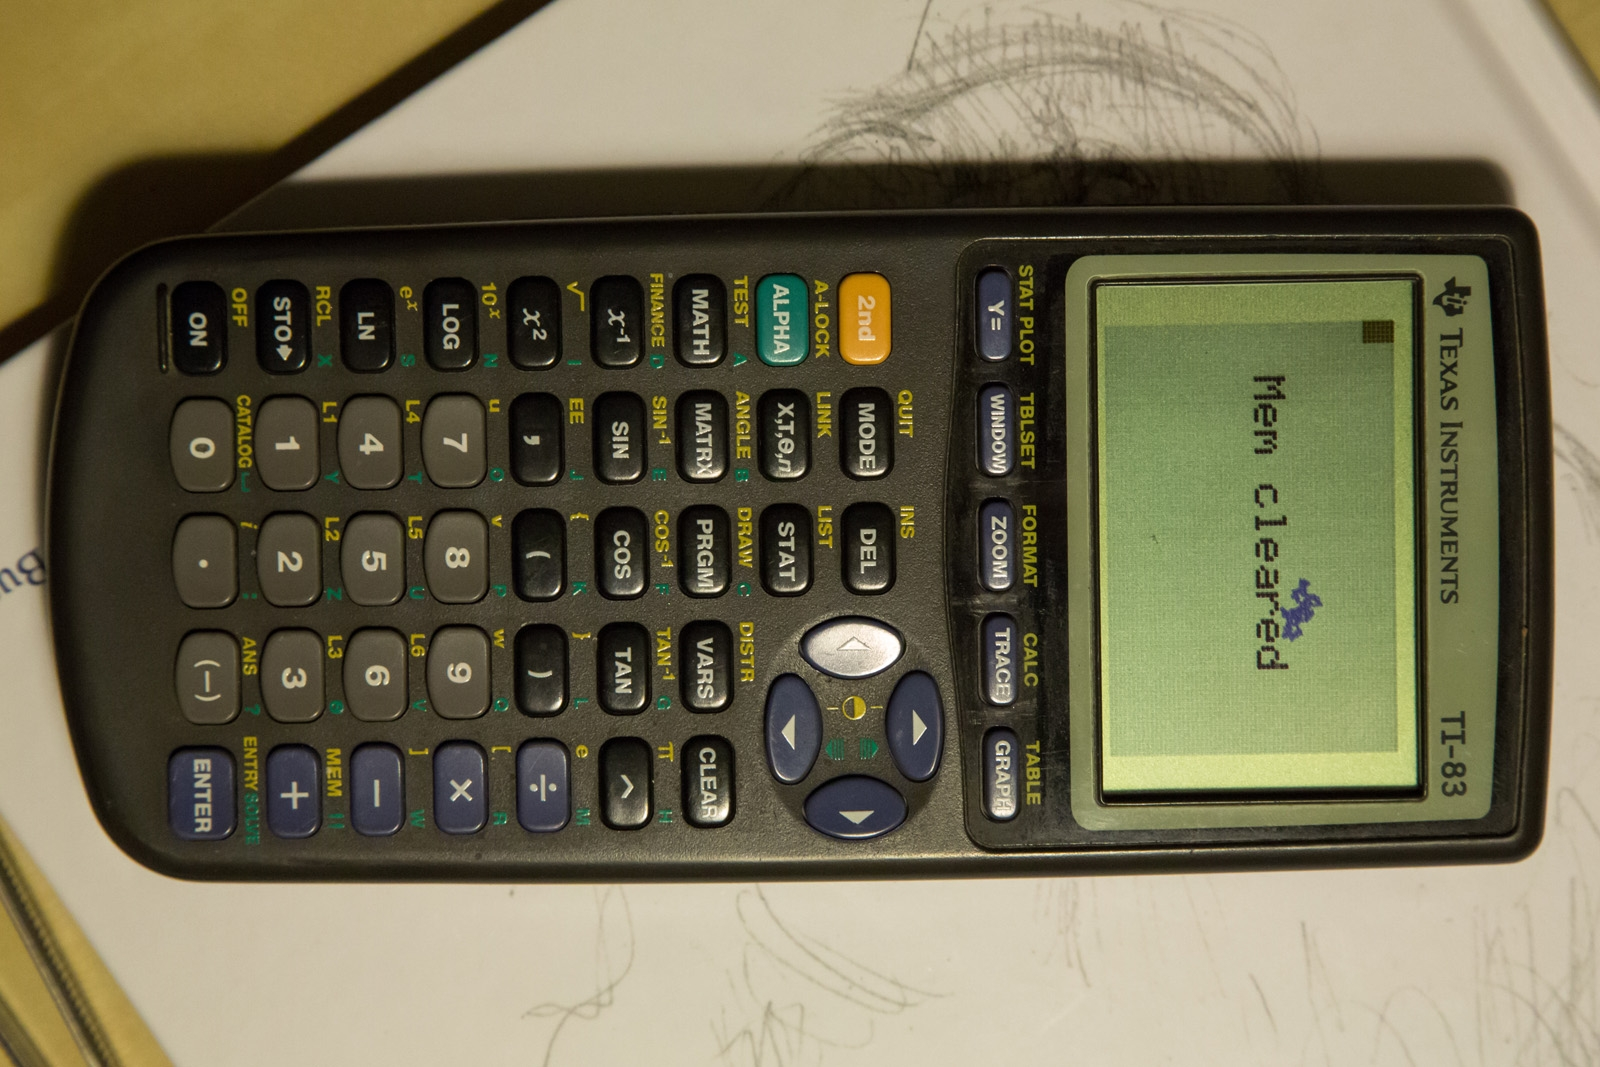 Texas Instruments TI-83 calculator display repaired and test